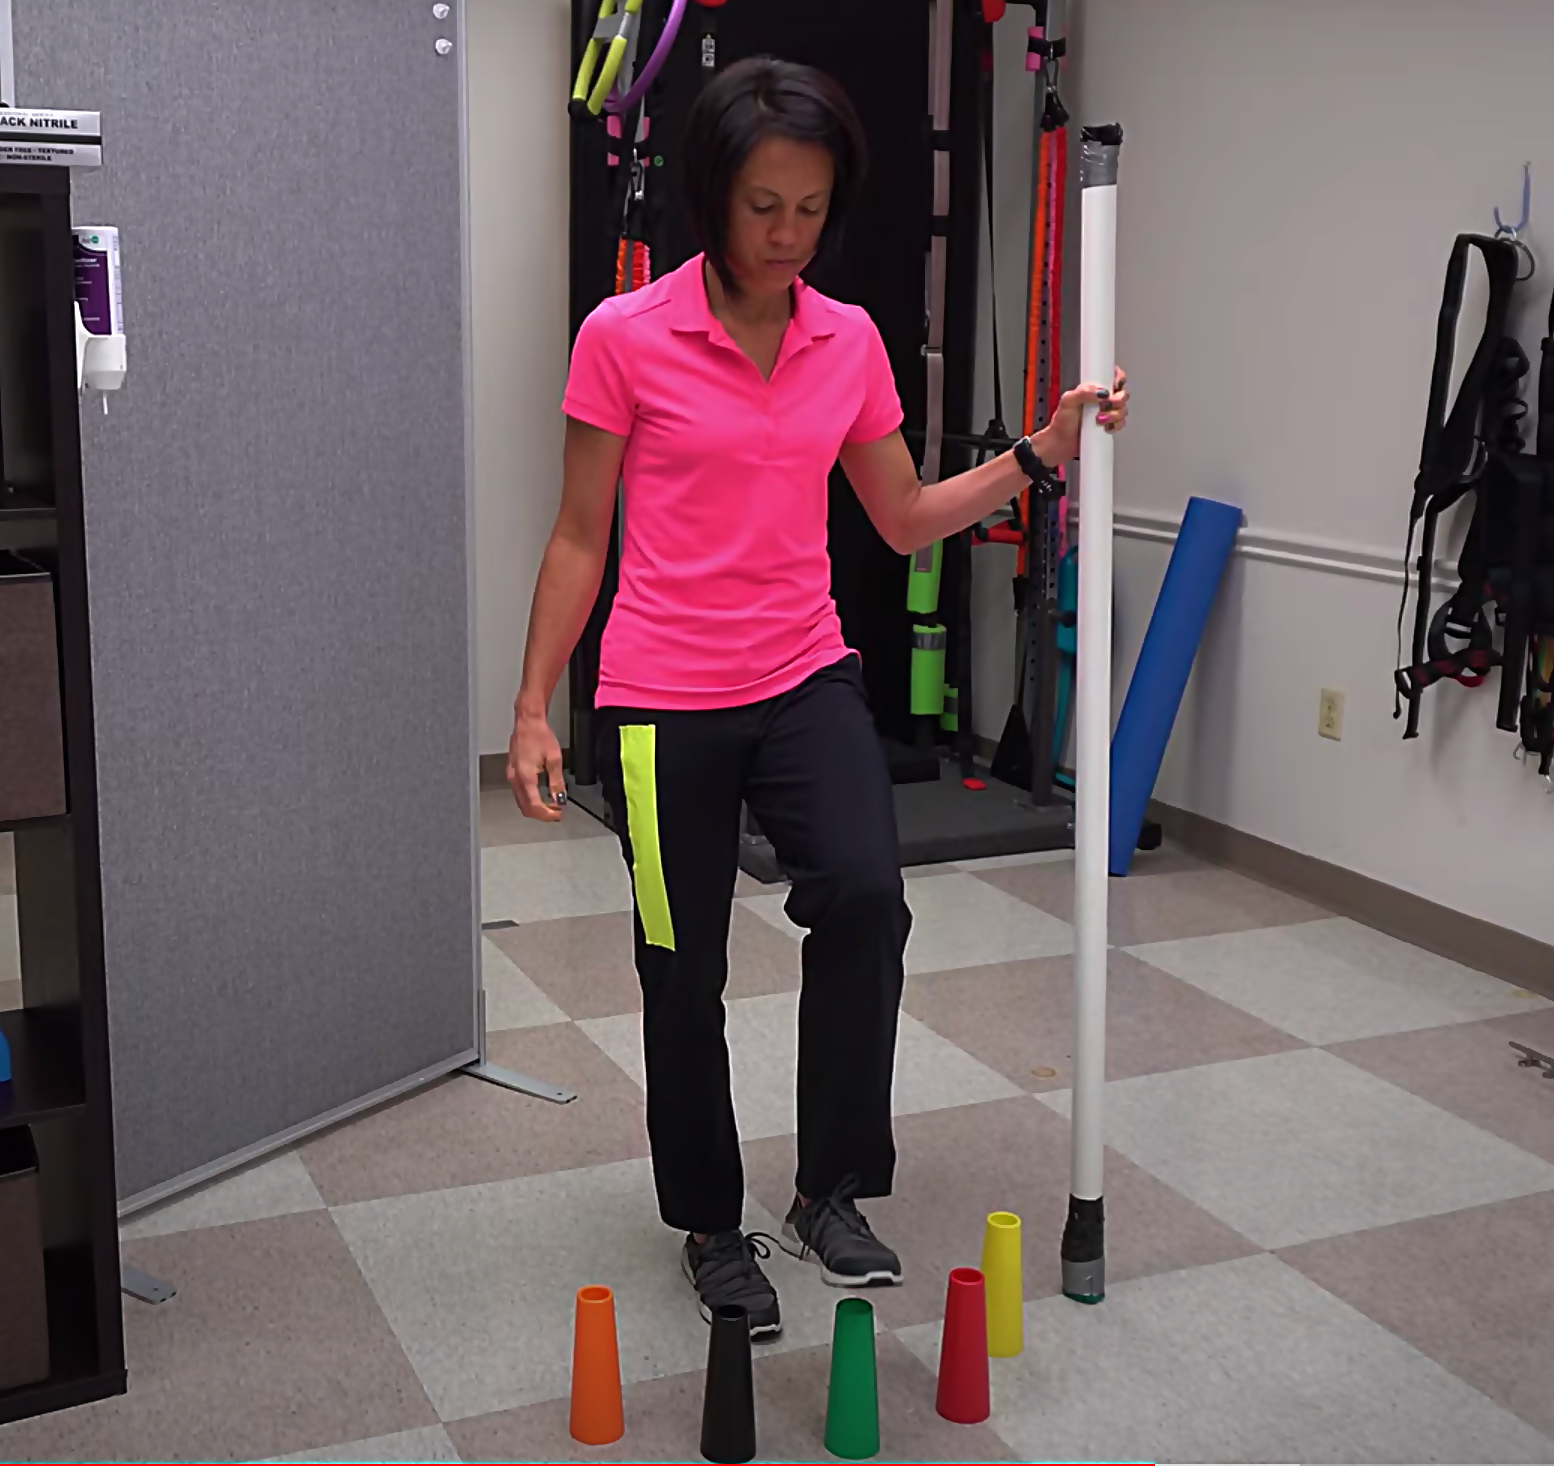 advanced walking exercise with stacking cones